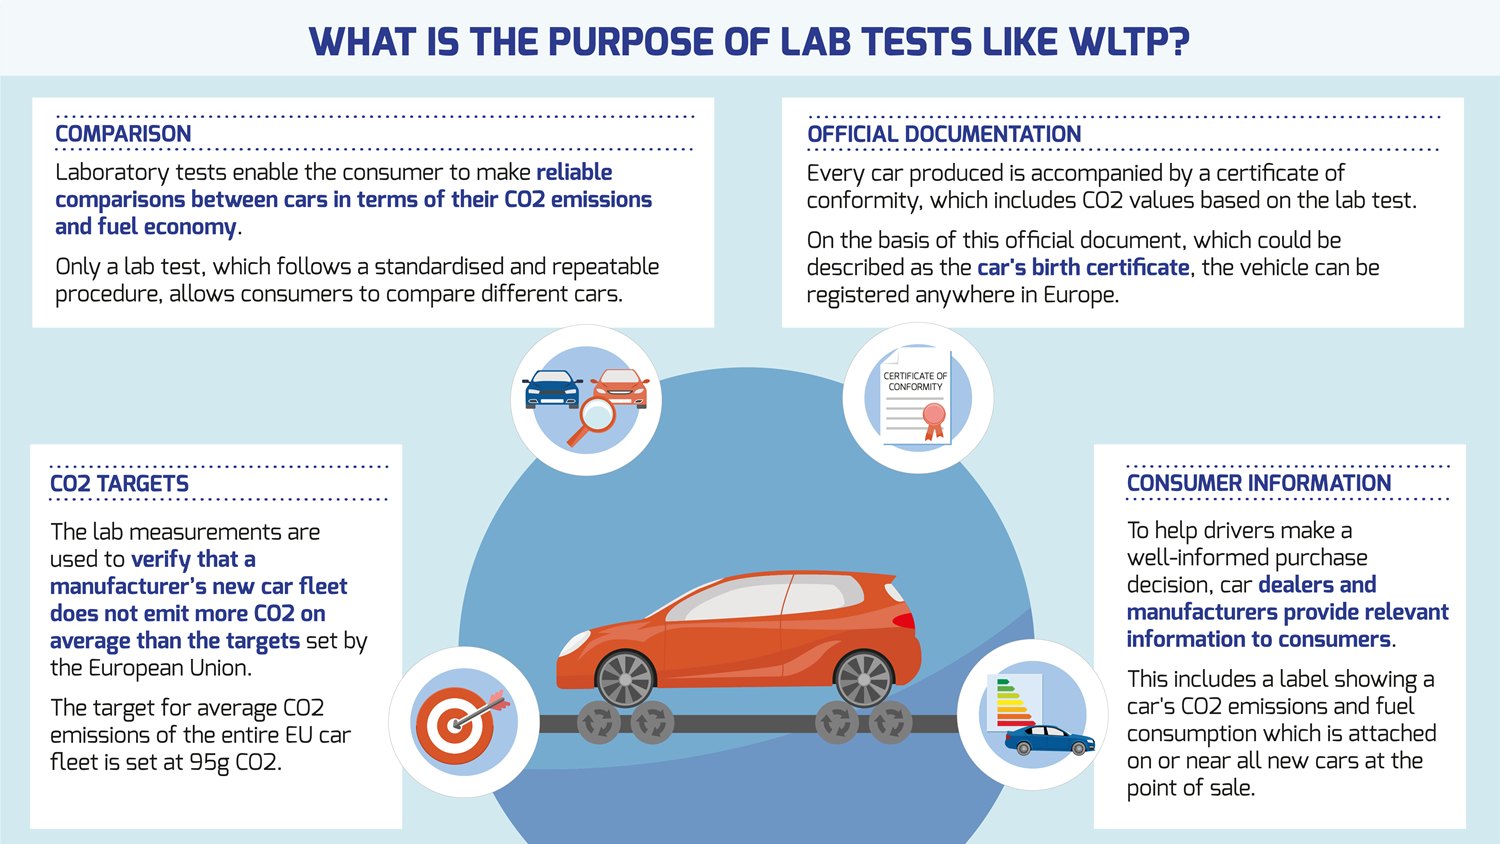 What is the purpose of WLTP?